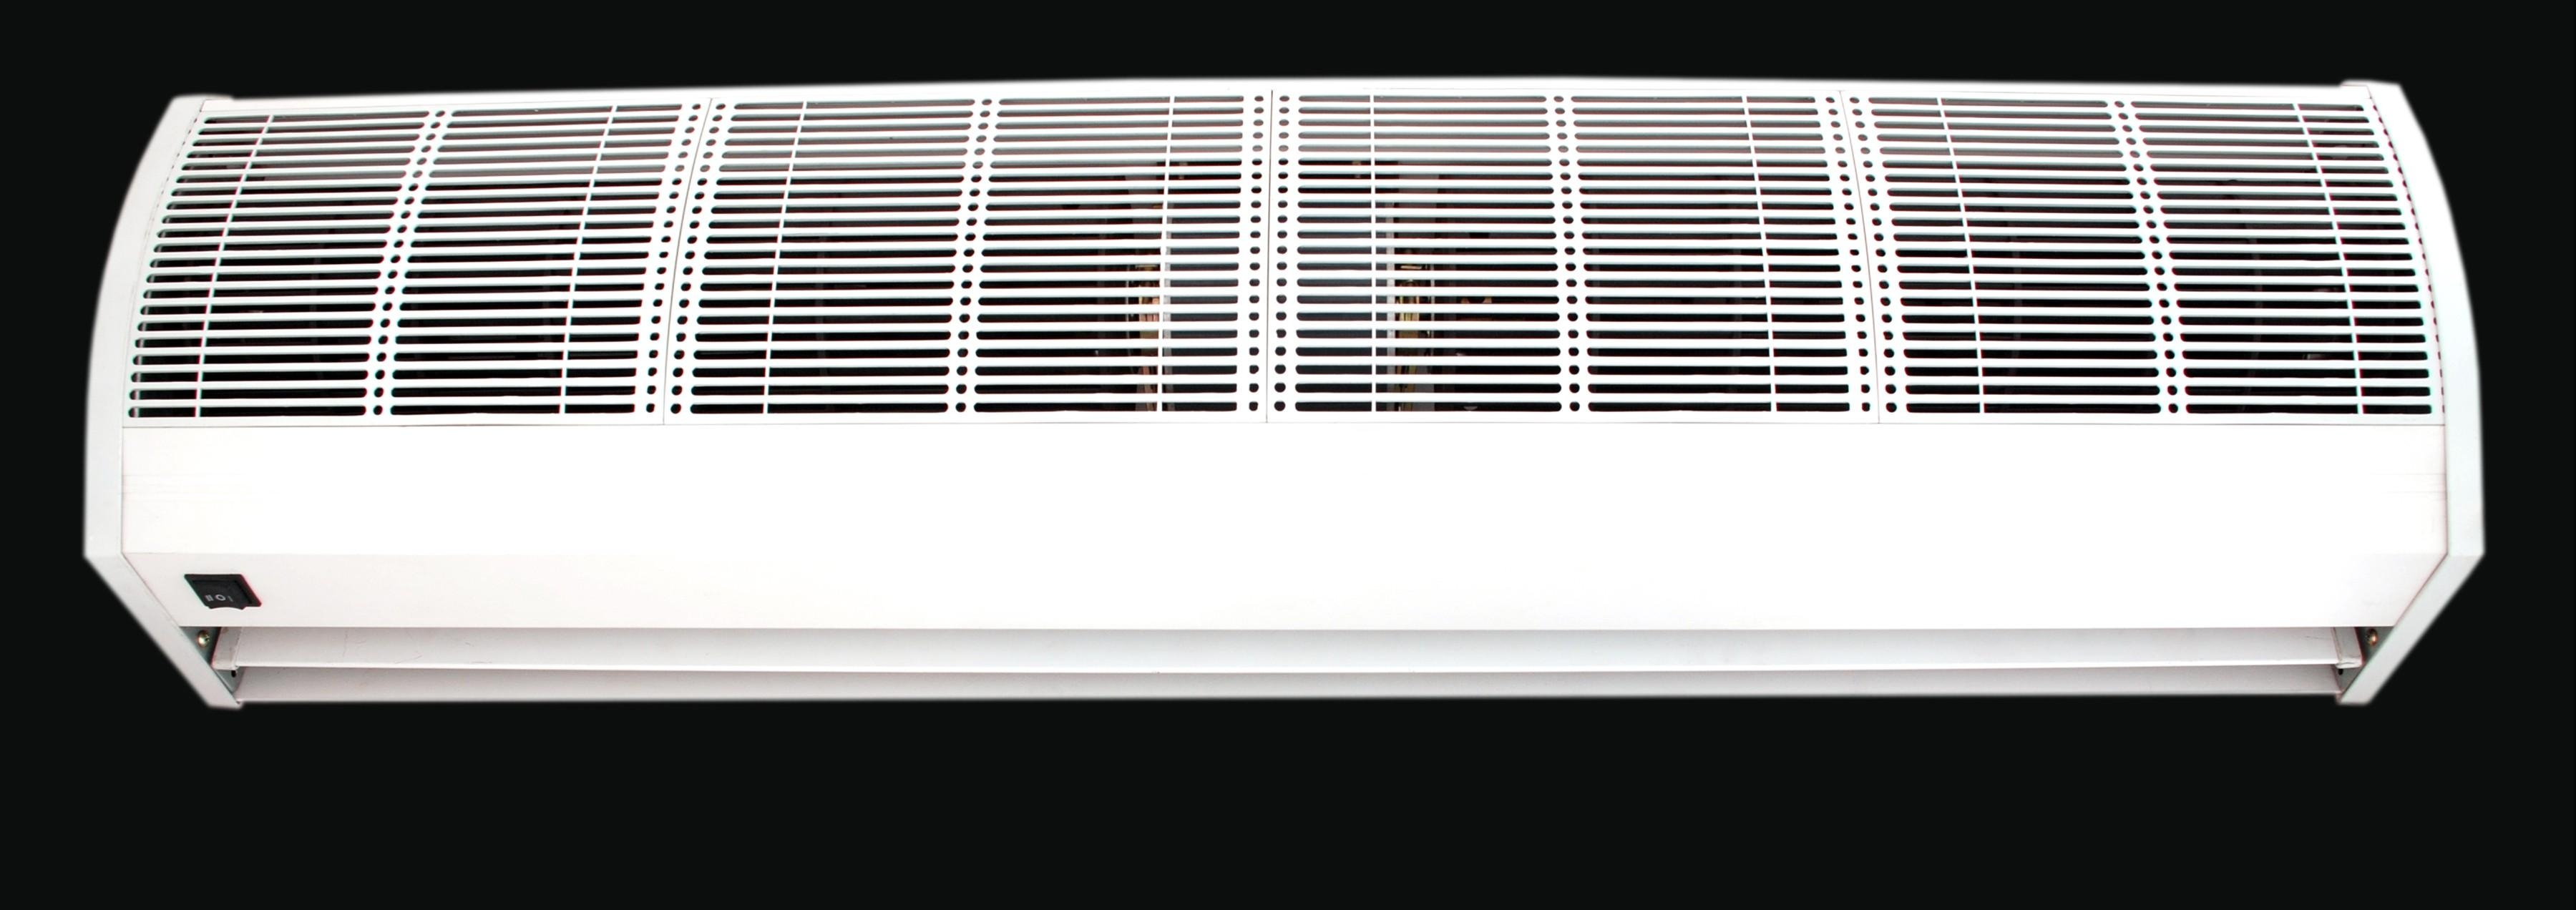 JMT PLASP (P) LTD - HIMCURTZ Air Curtains